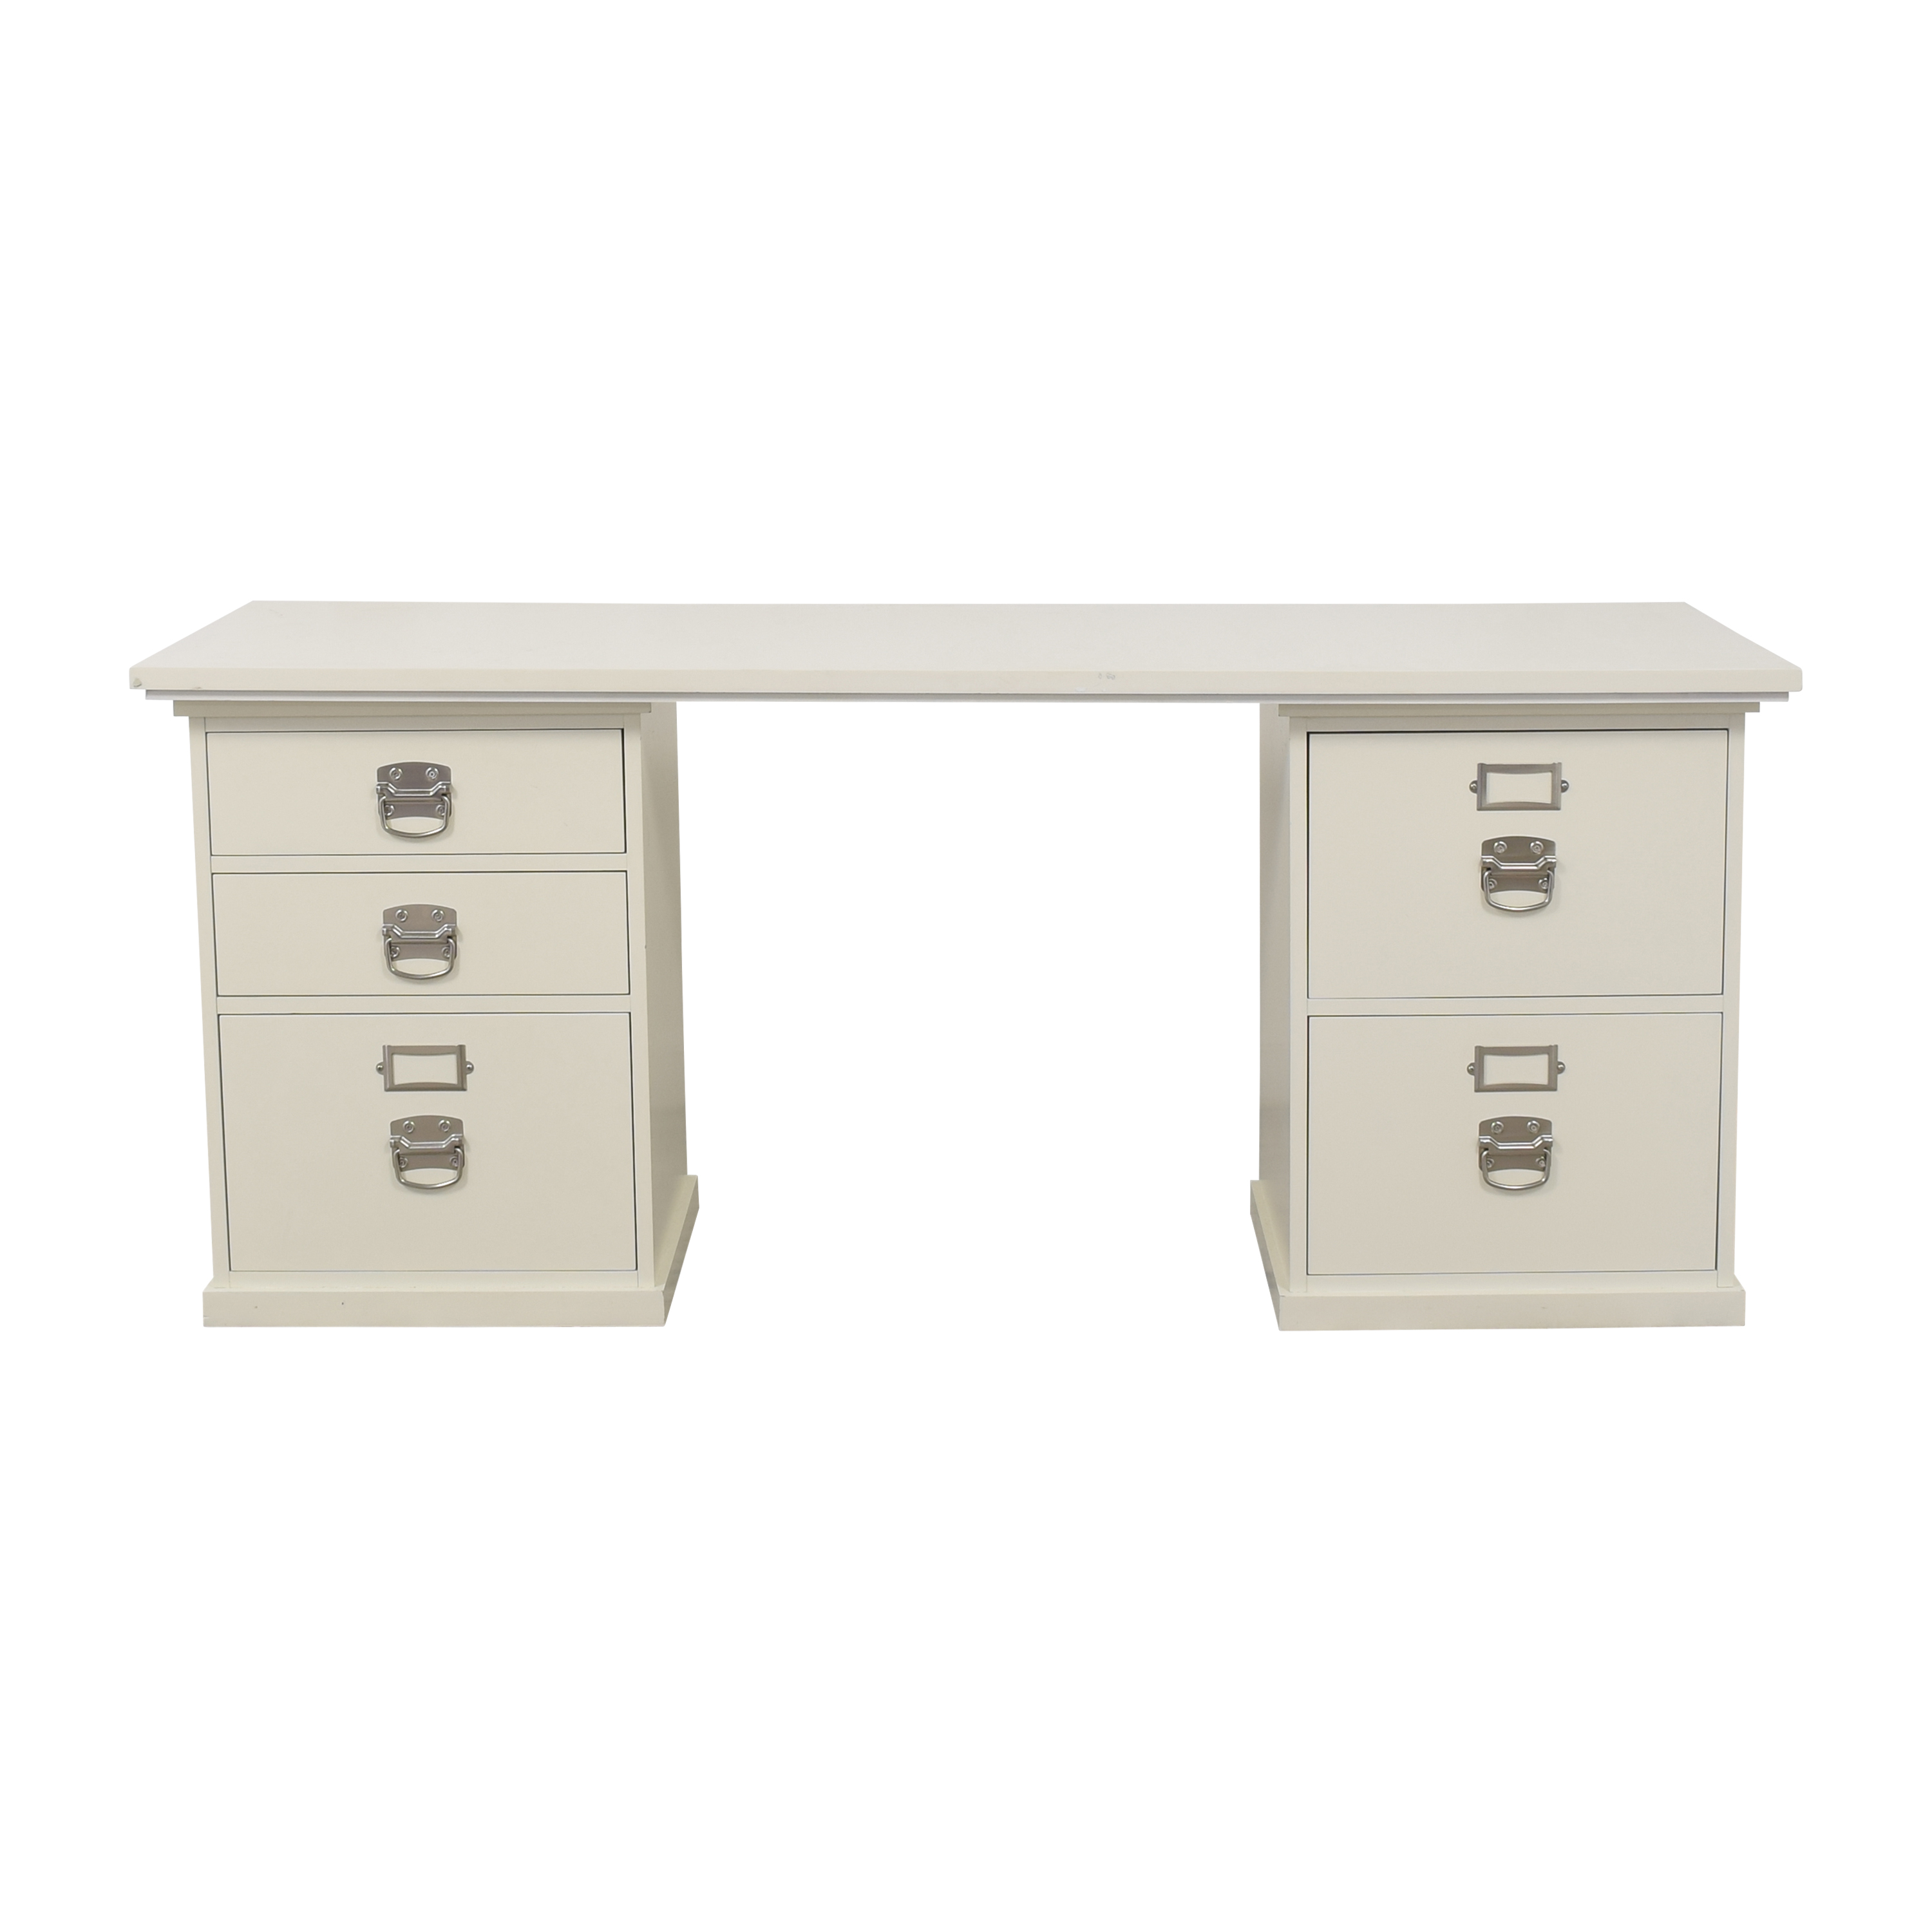 Pottery Barn Pottery Barn Bedford Desk with Five Drawers Home Office Desks